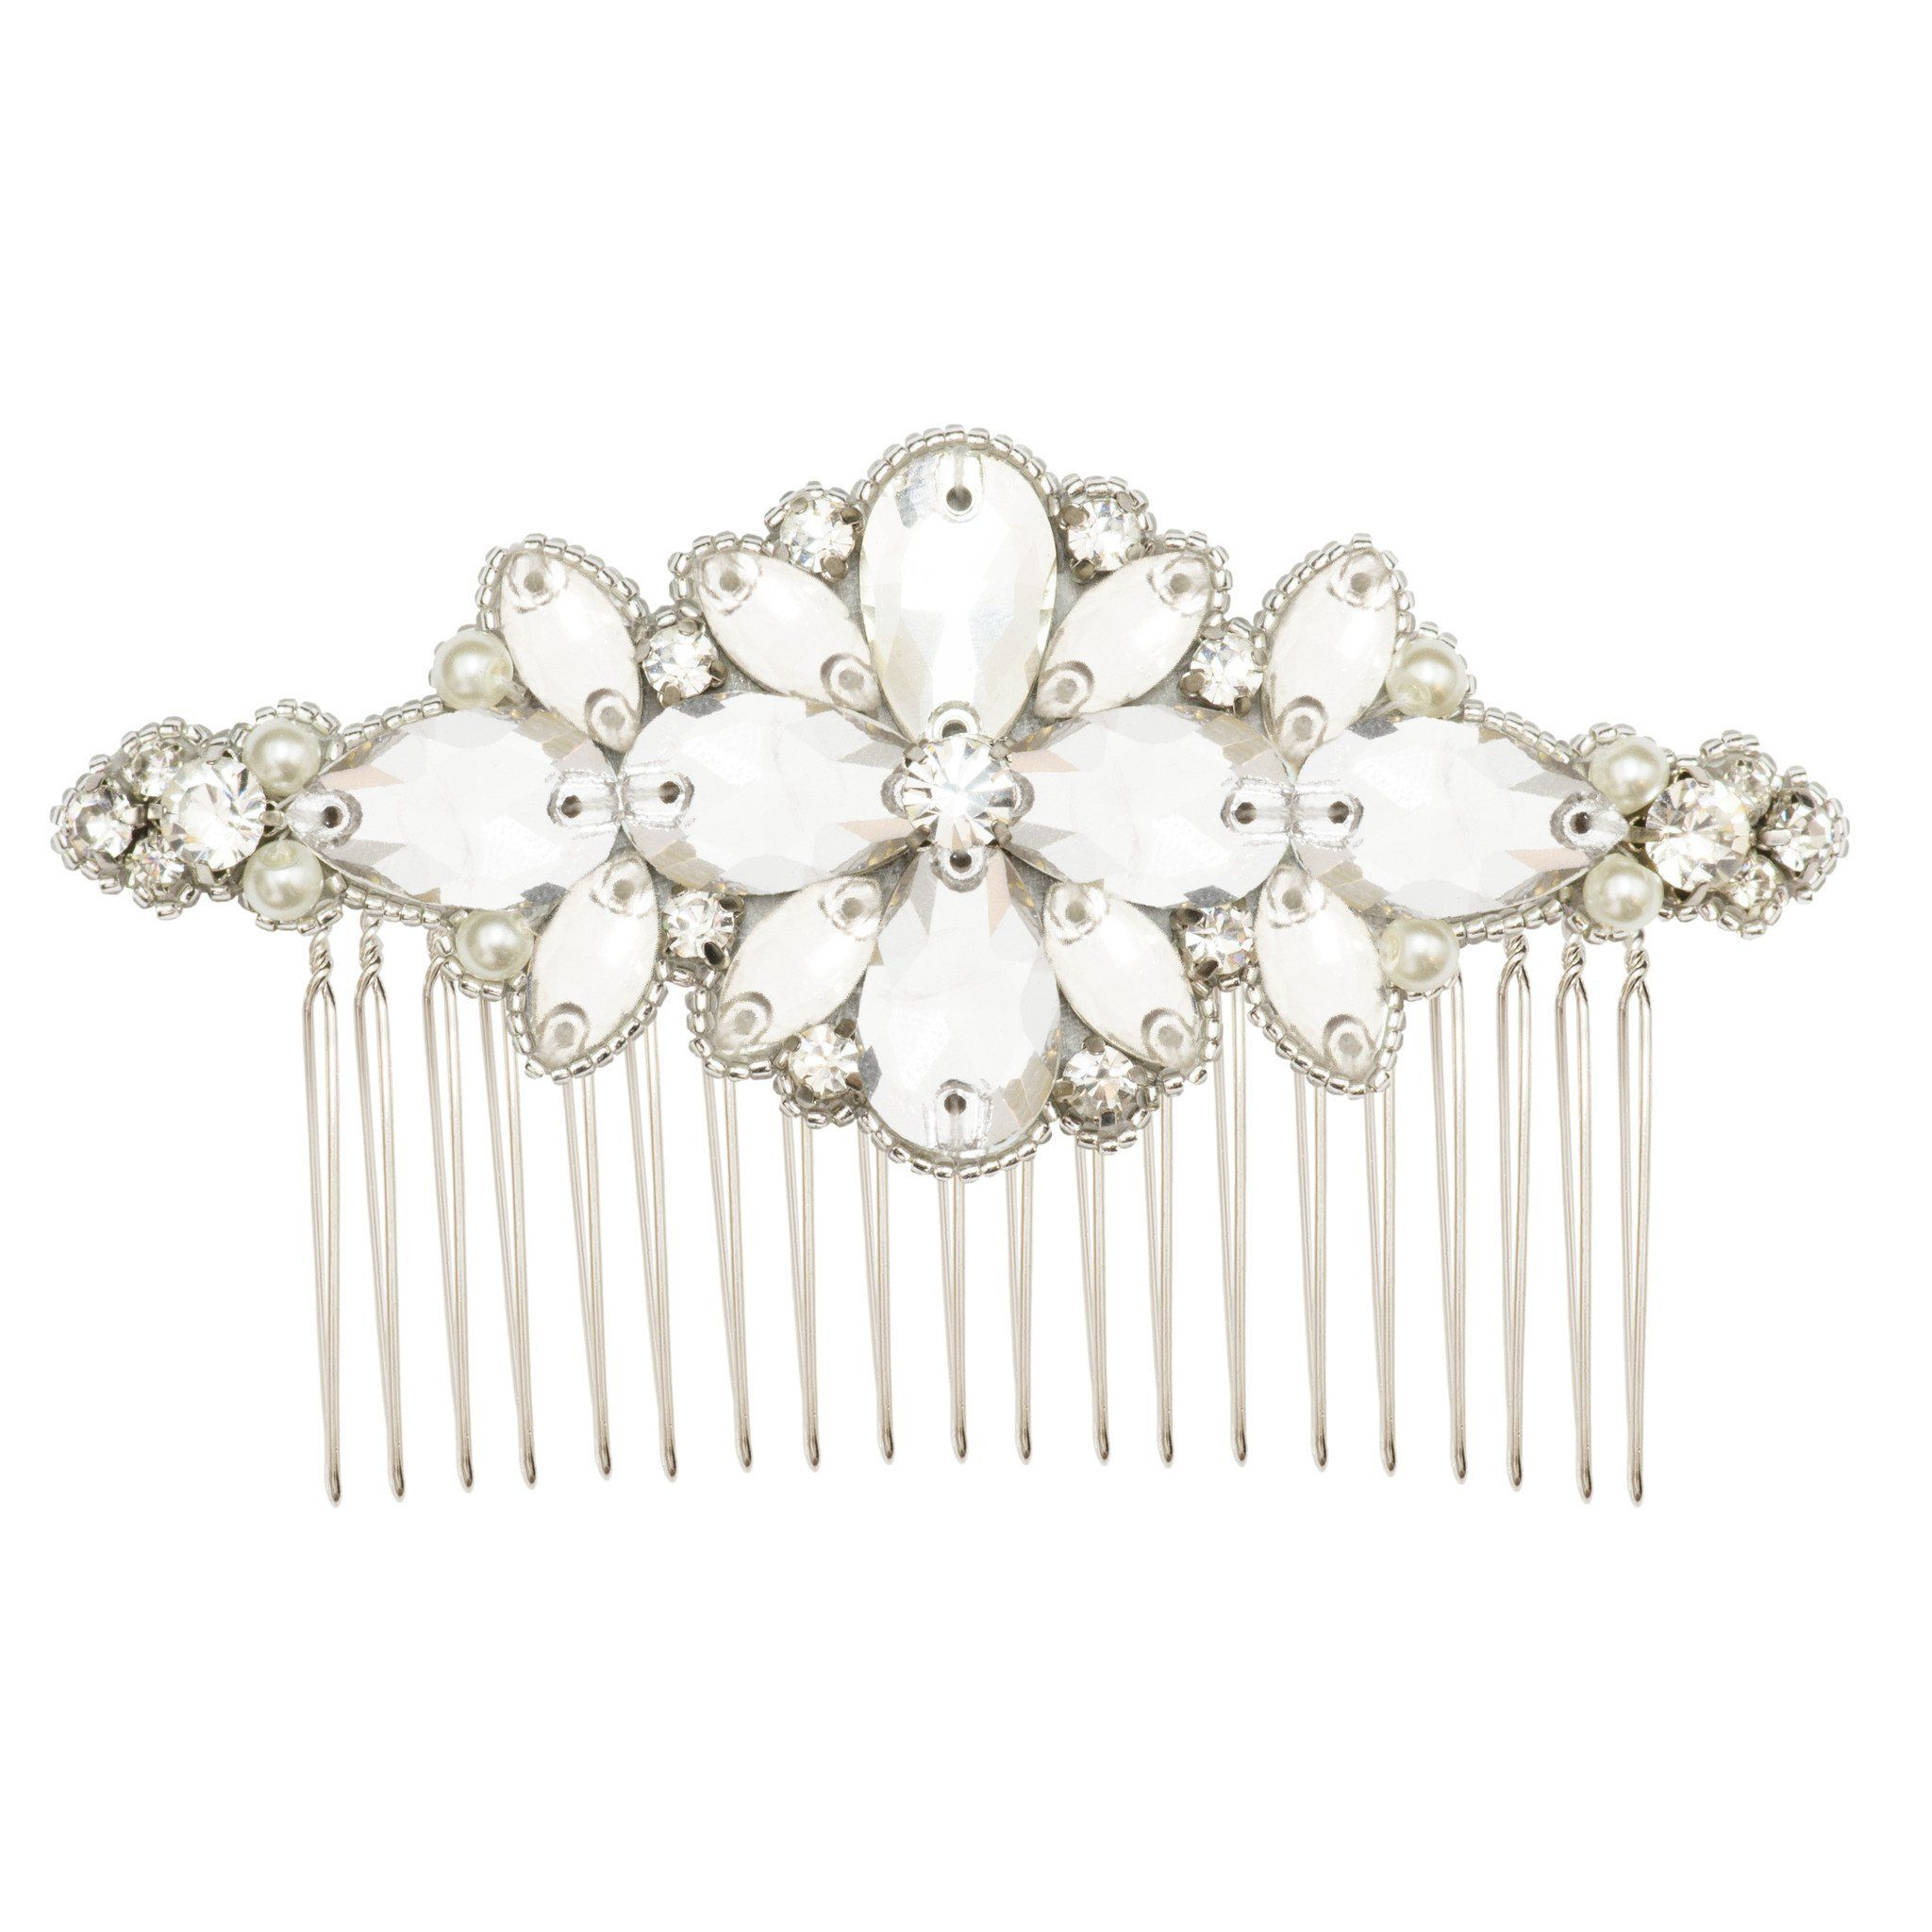 Silver wedding hair comb with crystals and pearls ucharia